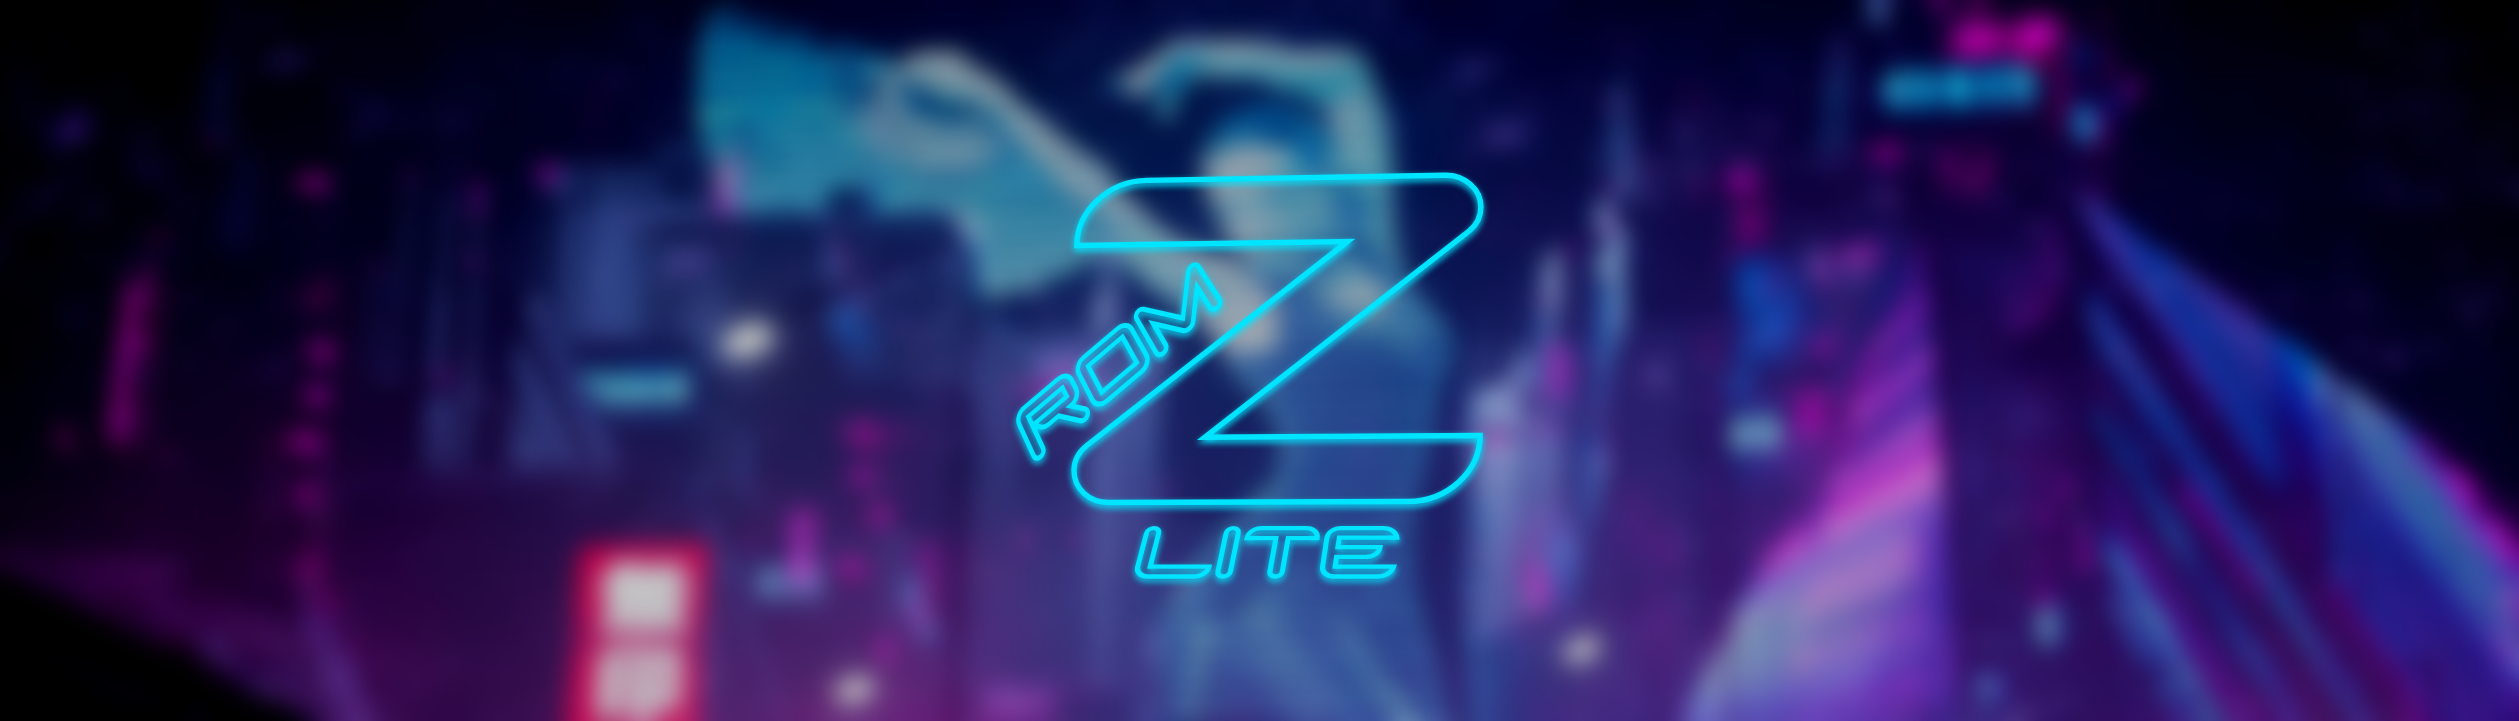 ZROM Lite banner.png